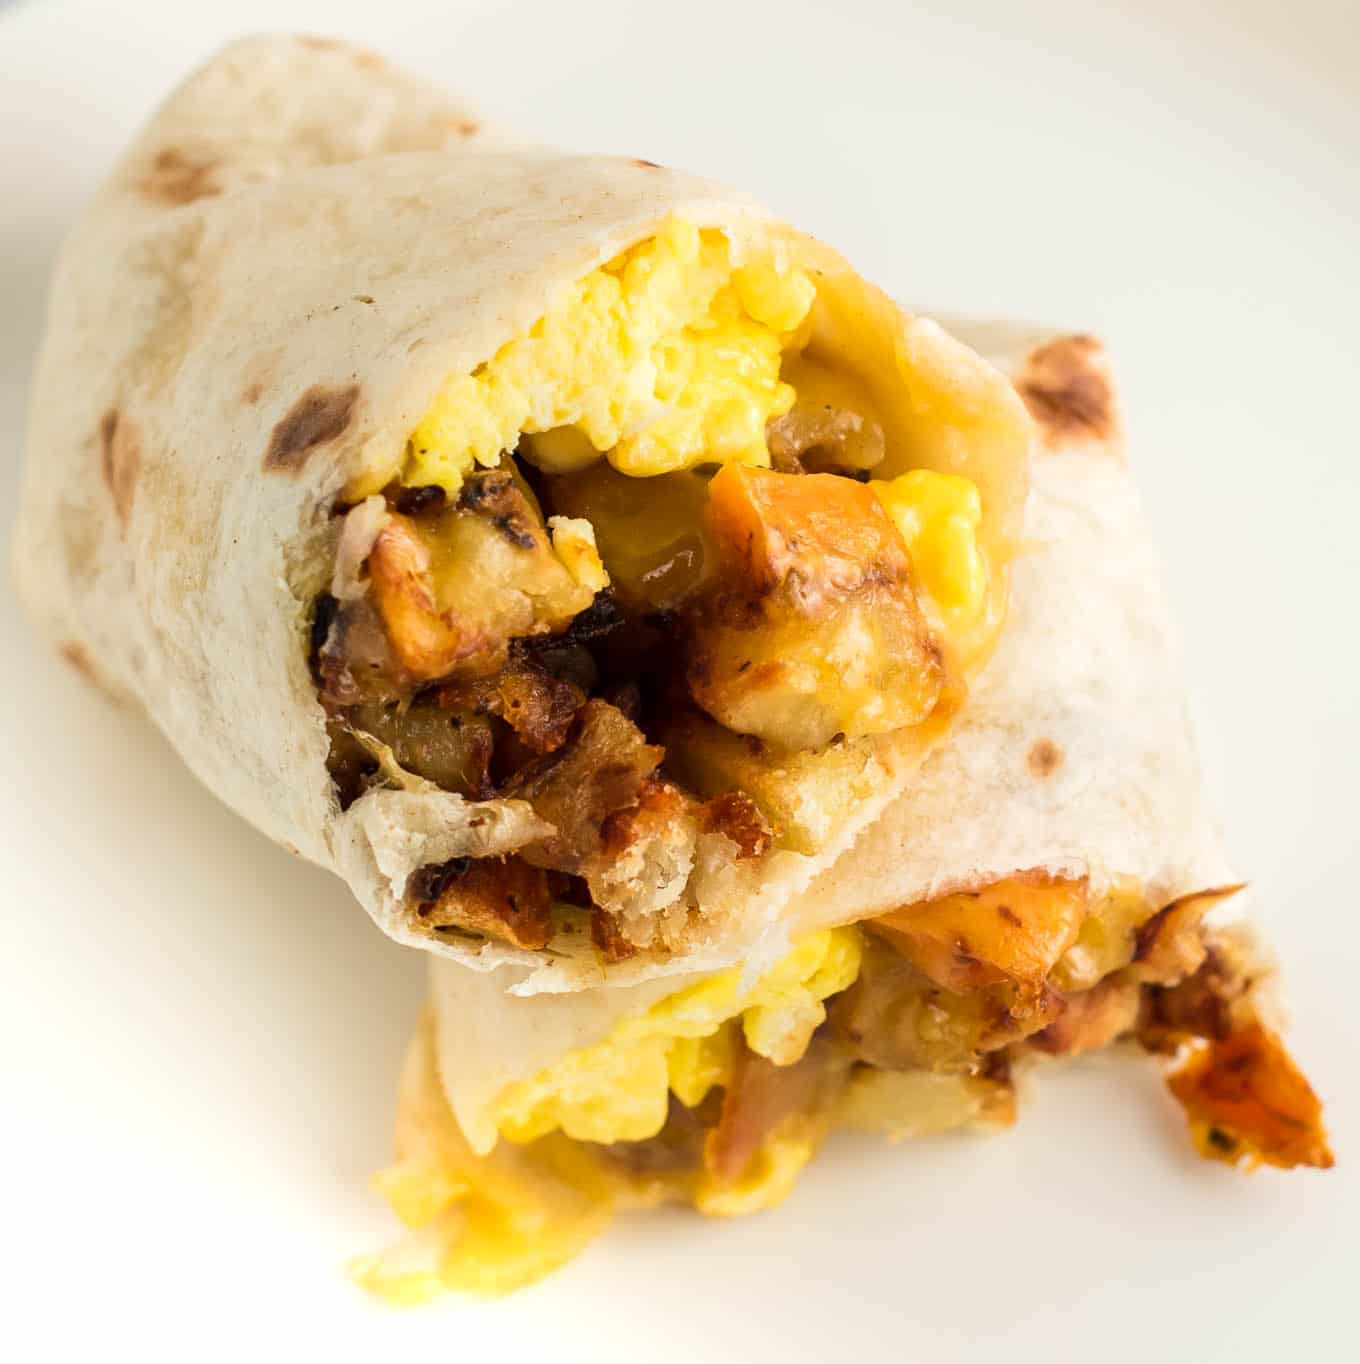 breakfast burrito cut in half